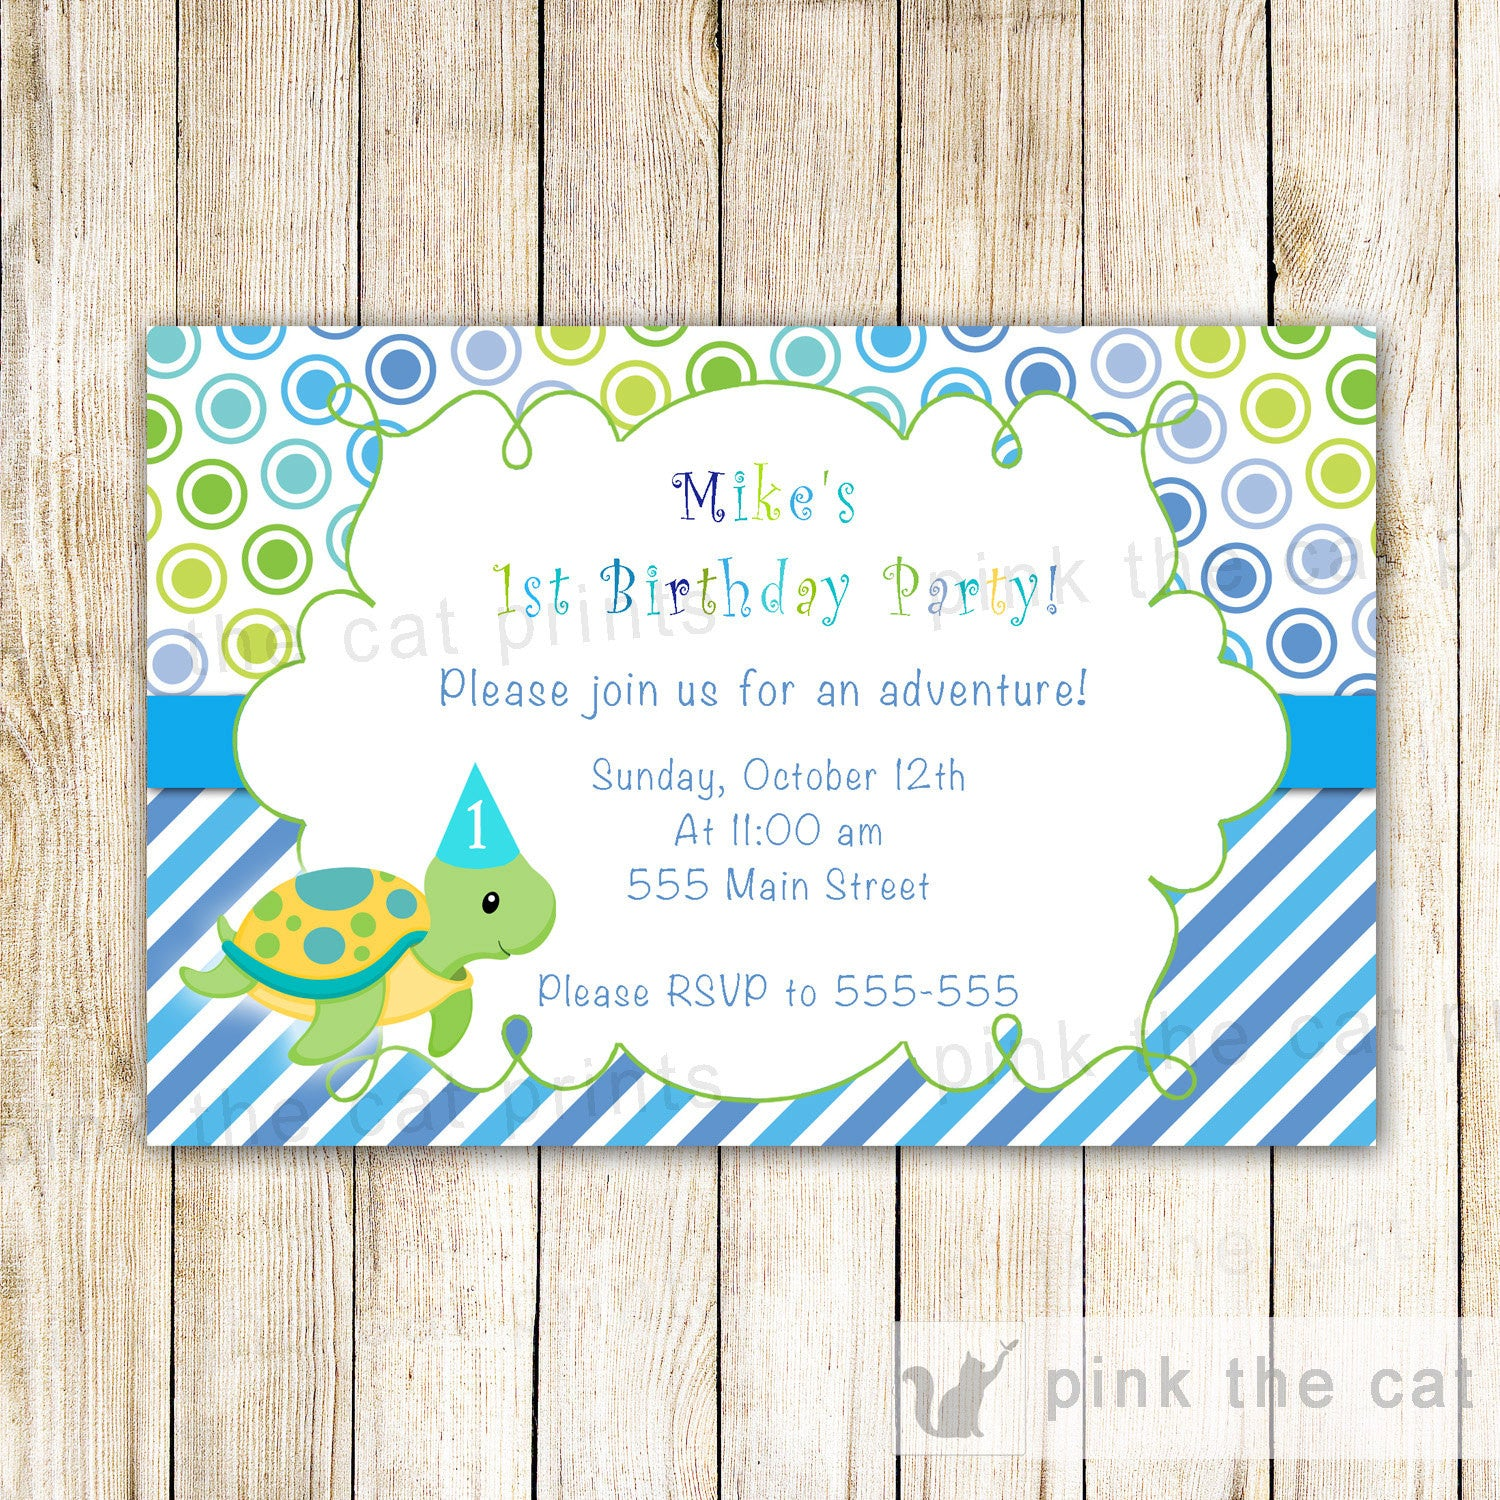 Turtle Invitation Boy Birthday Party Blue Green – Pink The Cat